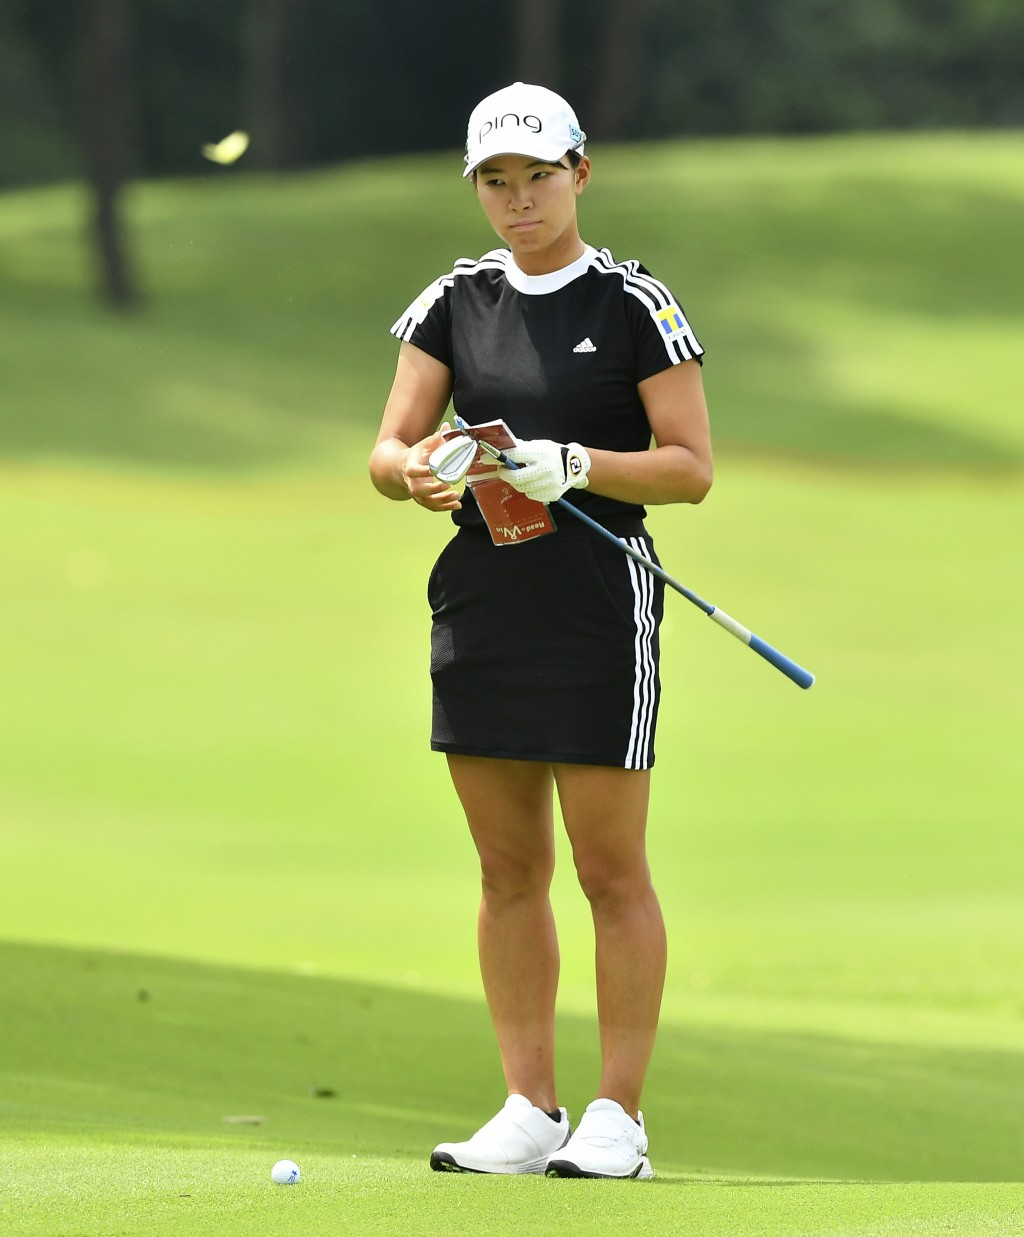 Hinako Shibuno of Japan prepares for a putt on the 18th green during the final round of the LPGA Honda Thailand golf tournament in Pattaya, southern T...